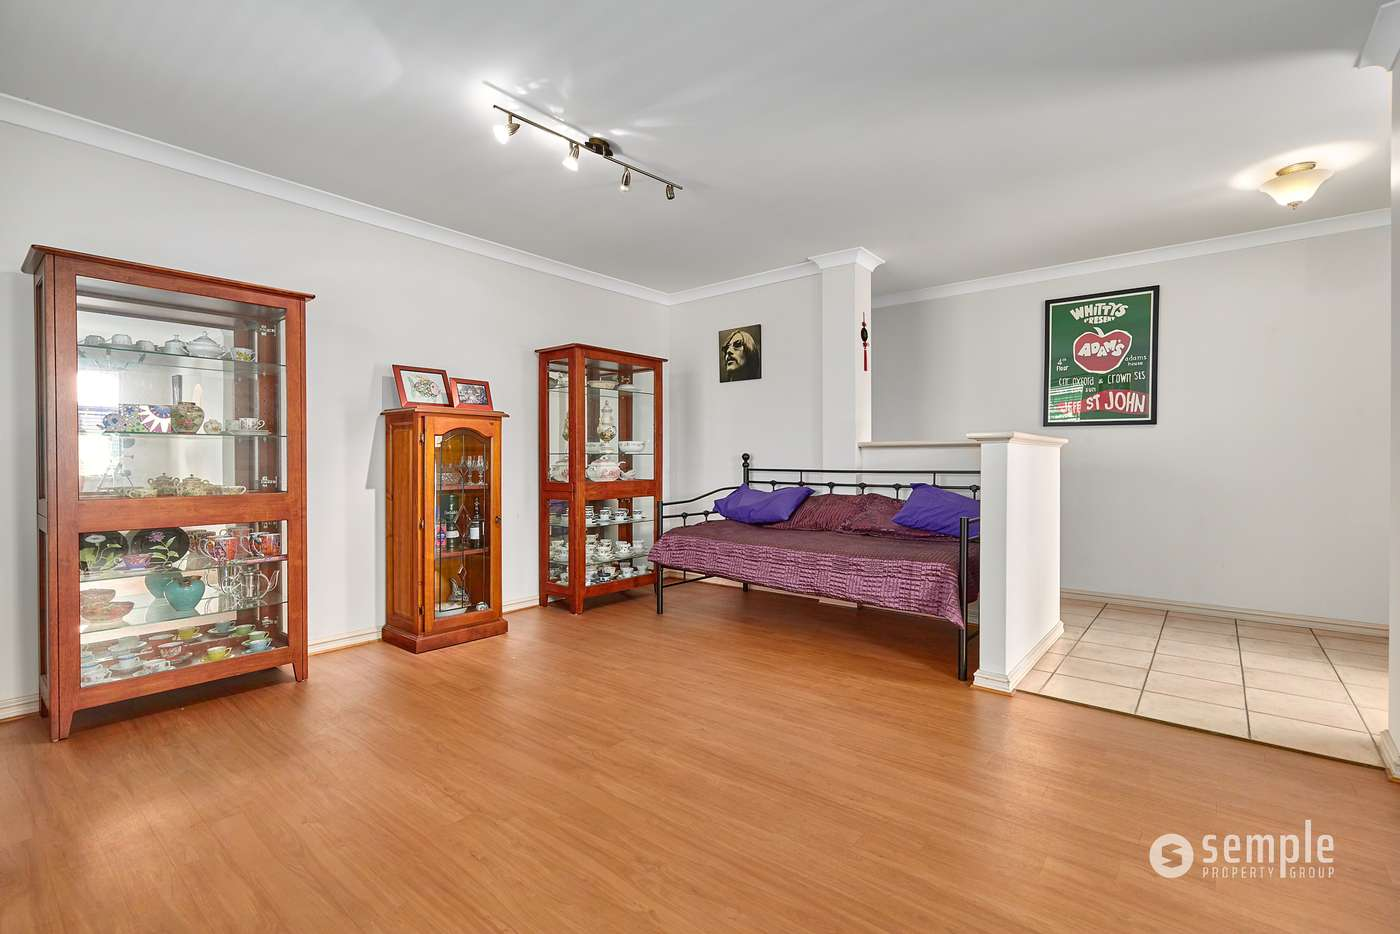 Fifth view of Homely house listing, 11 Possum Glade, Beeliar WA 6164